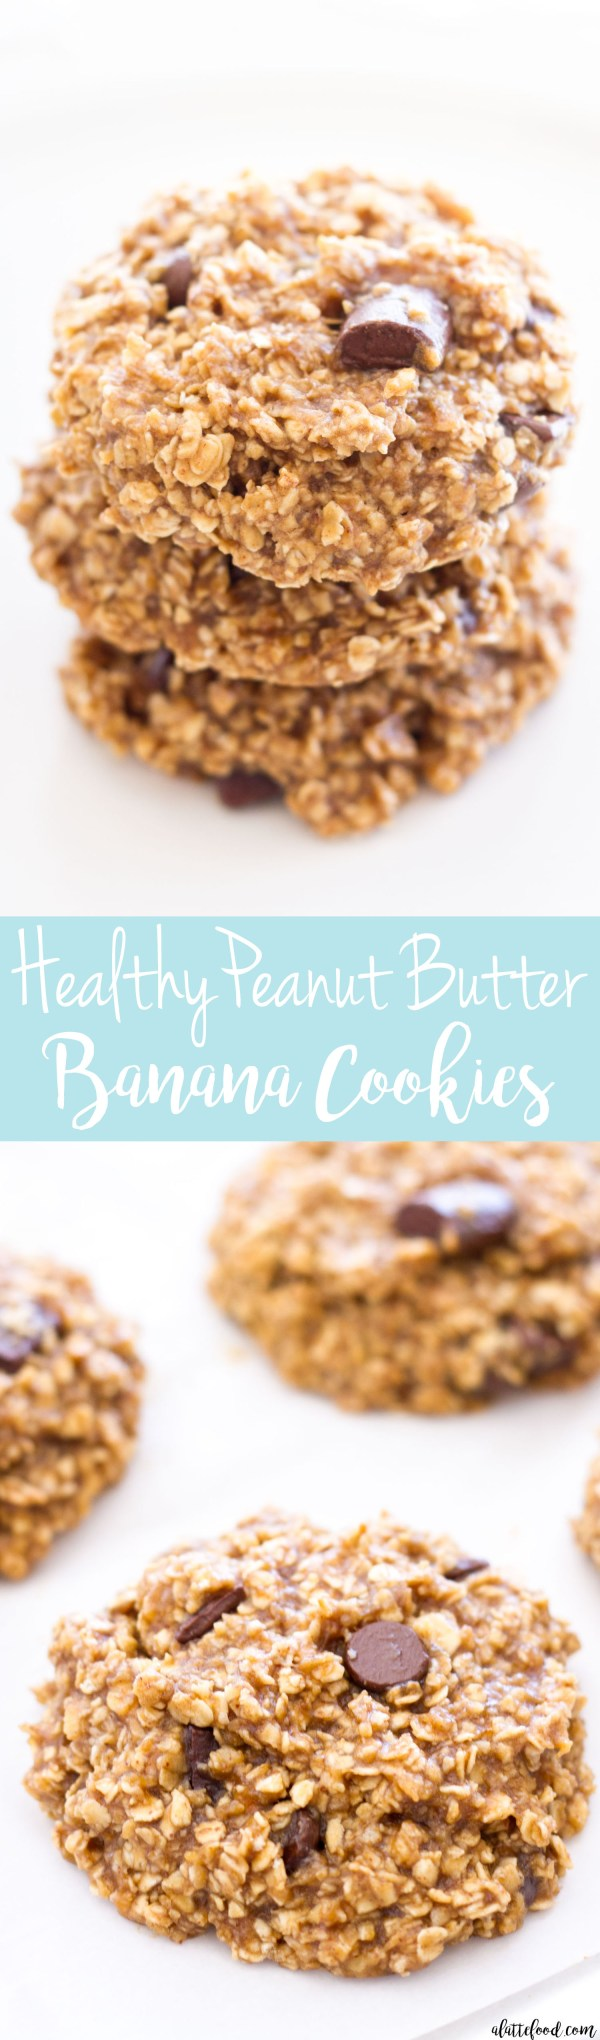 These healthy peanut butter banana cookies are full of oats, peanut butter, and sweet chocolate chunks! With no flour or butter in these cookies, these peanut butter banana cookies are a guilt-free dessert!